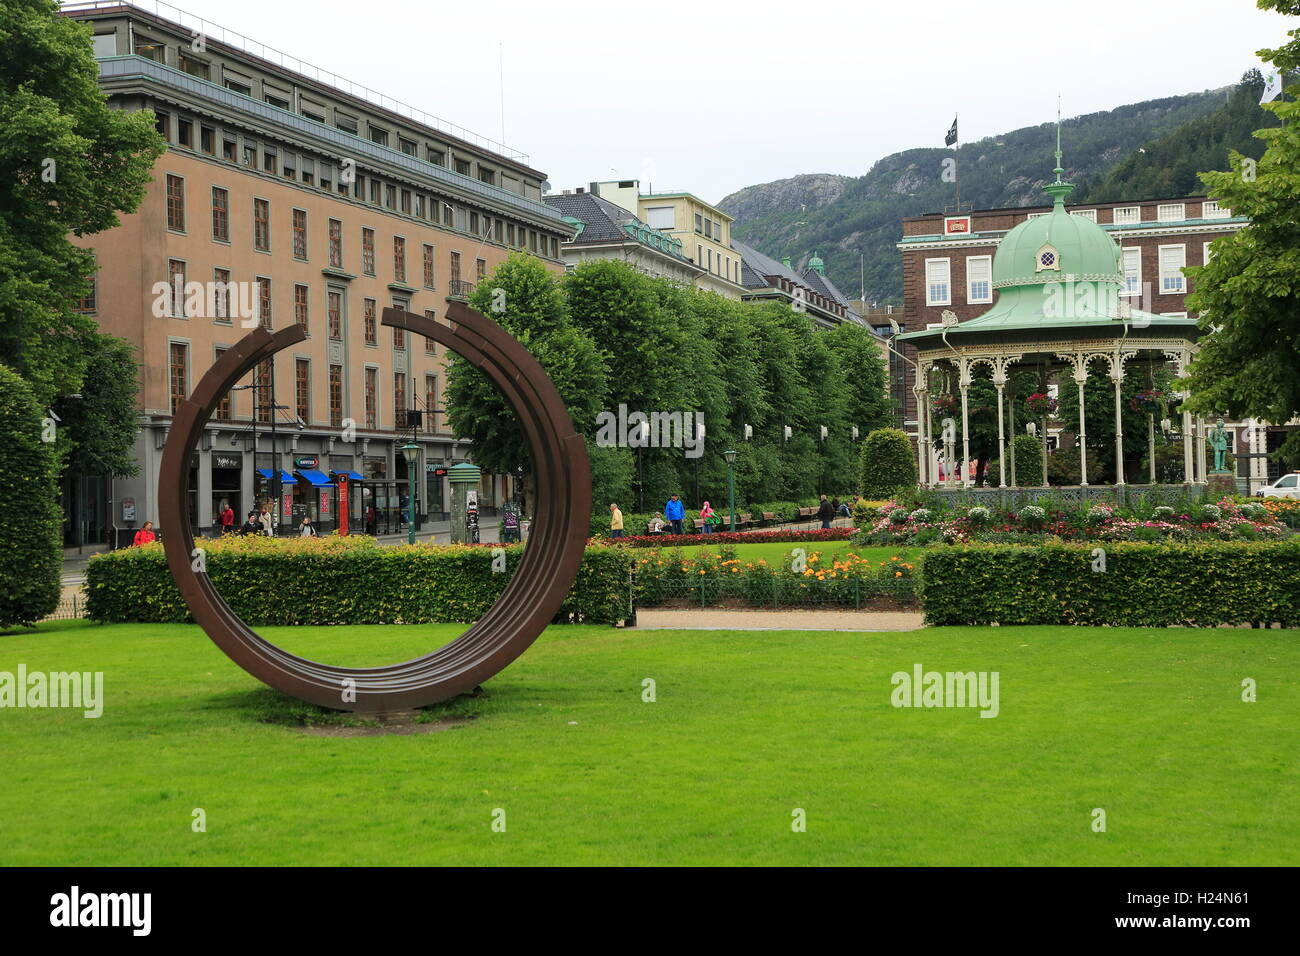 Bandstand park and buildings city centre Bergen, Norway - Stock Image